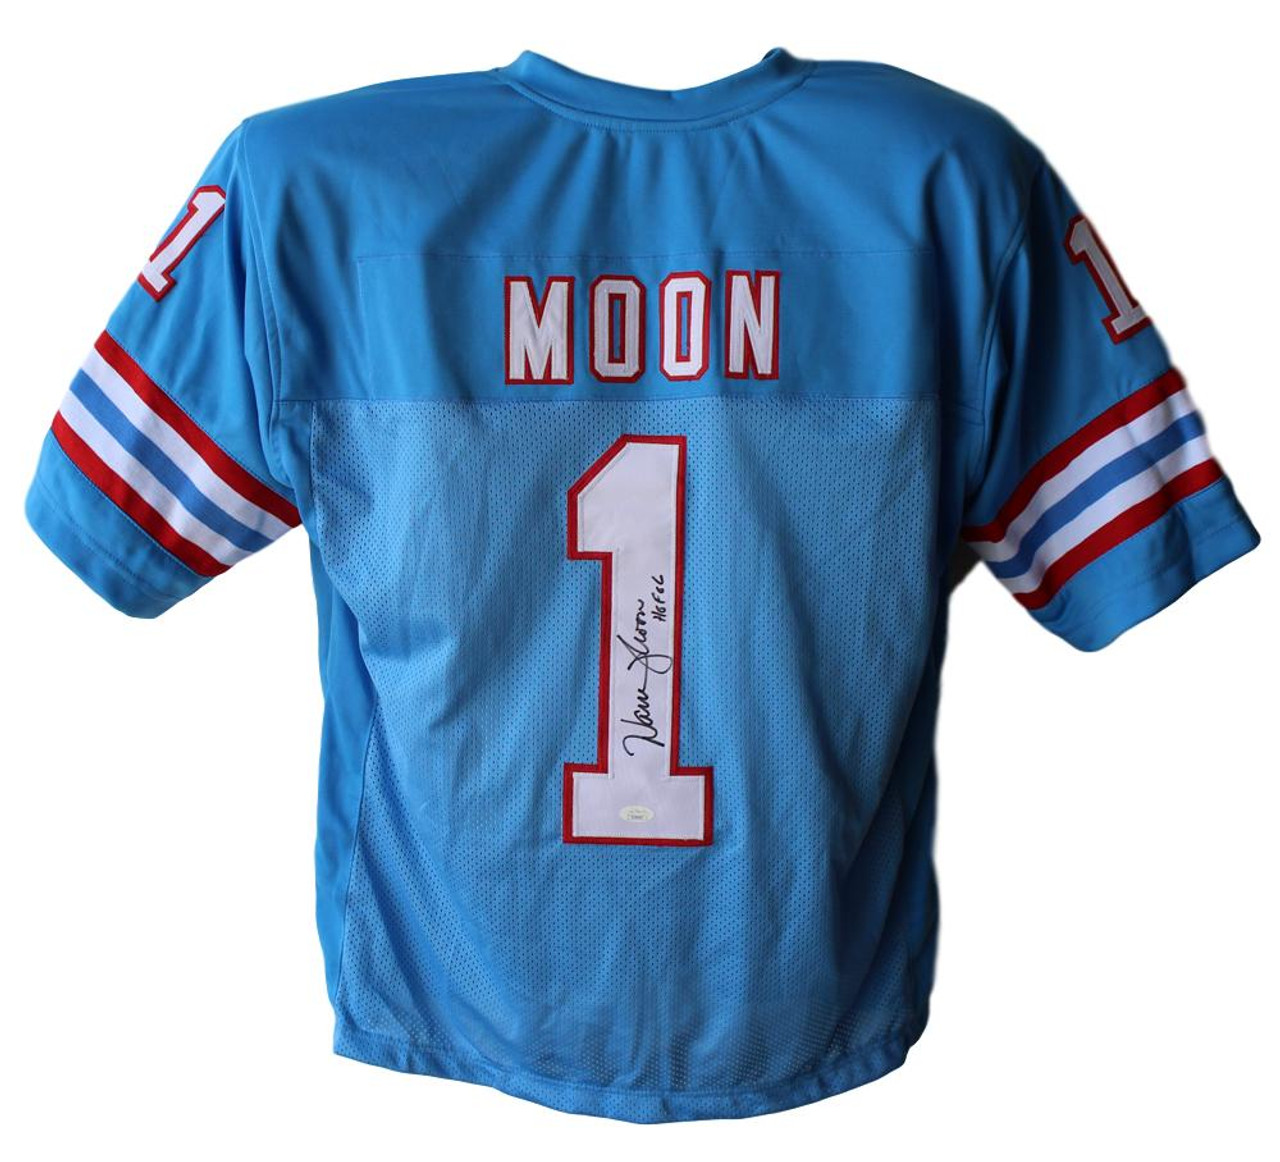 warren moon jersey